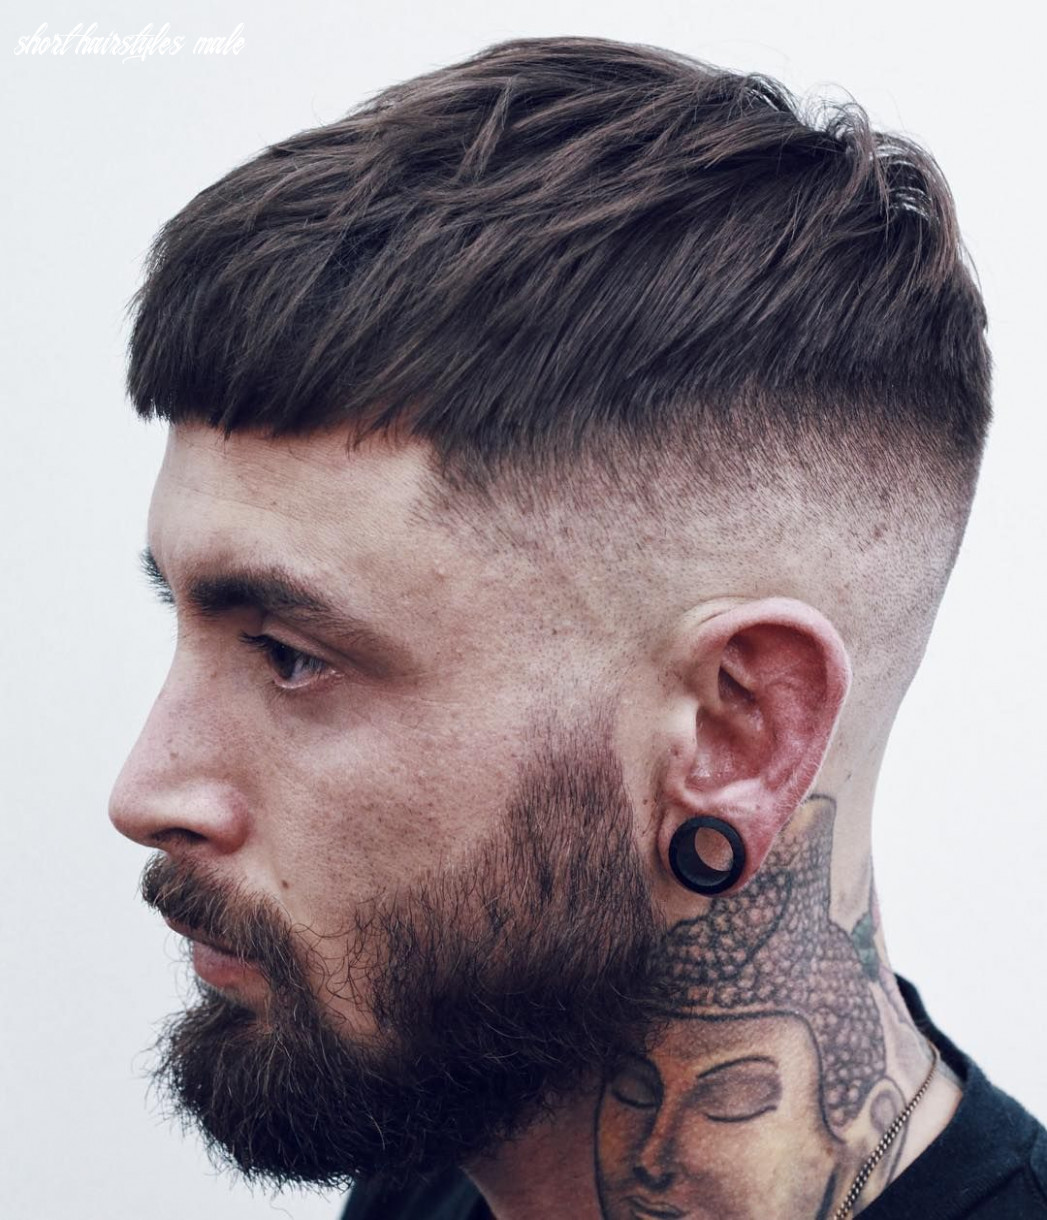 11 cool short haircuts hairstyles for men (11 update